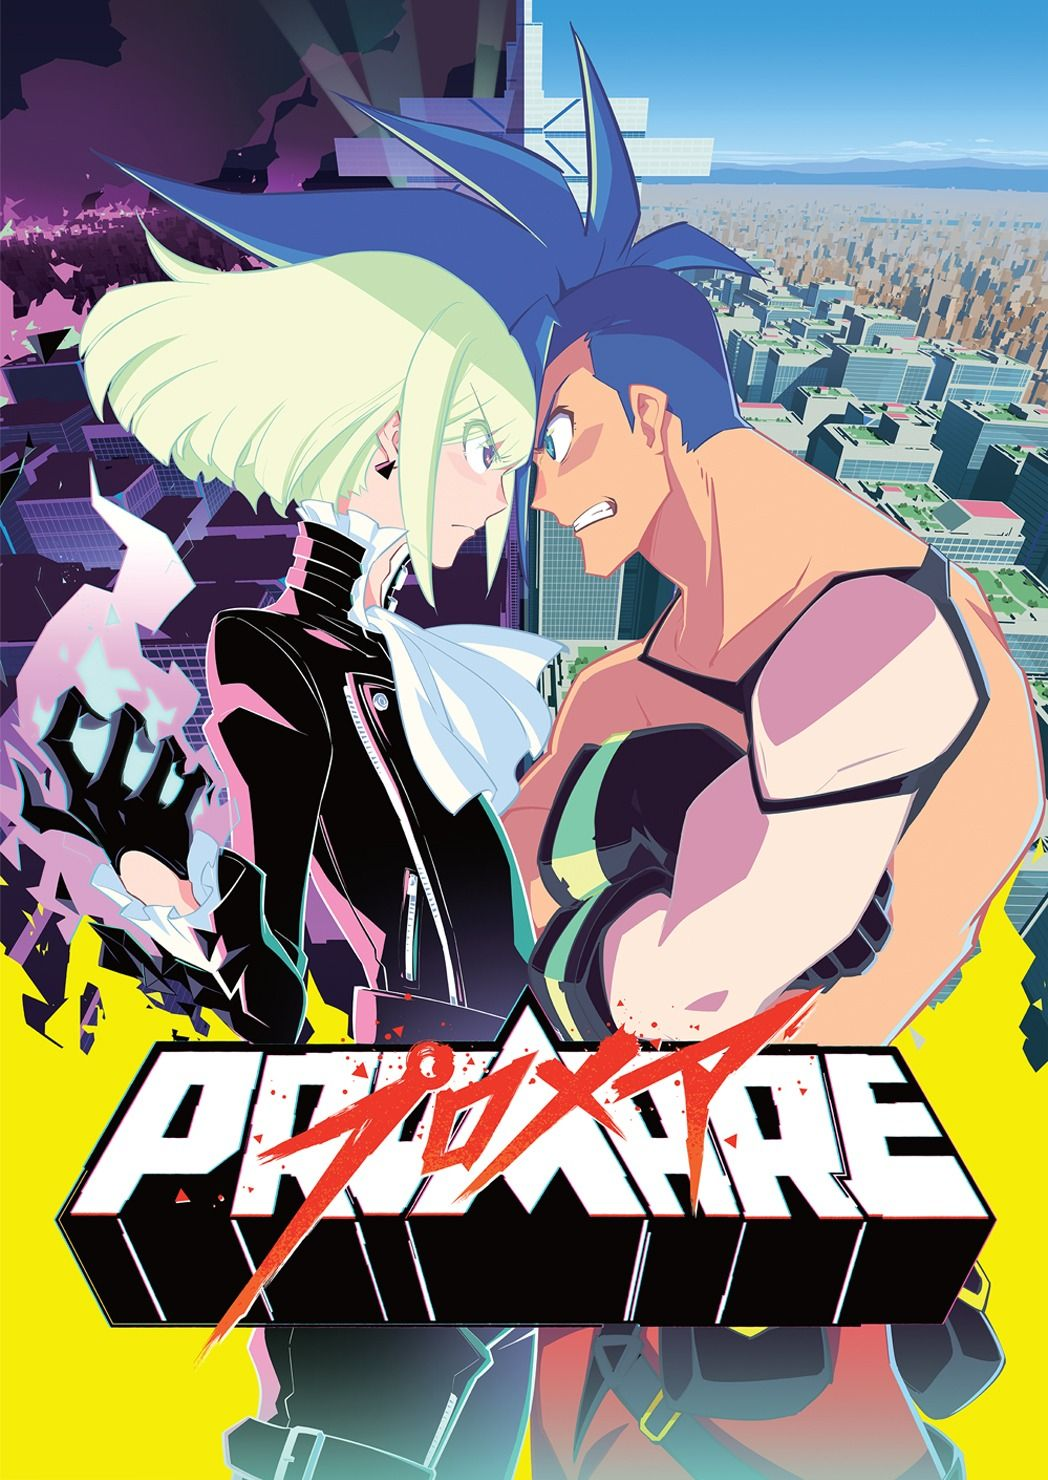 PROMARE Fathom Events diffonde il trailer in lingua